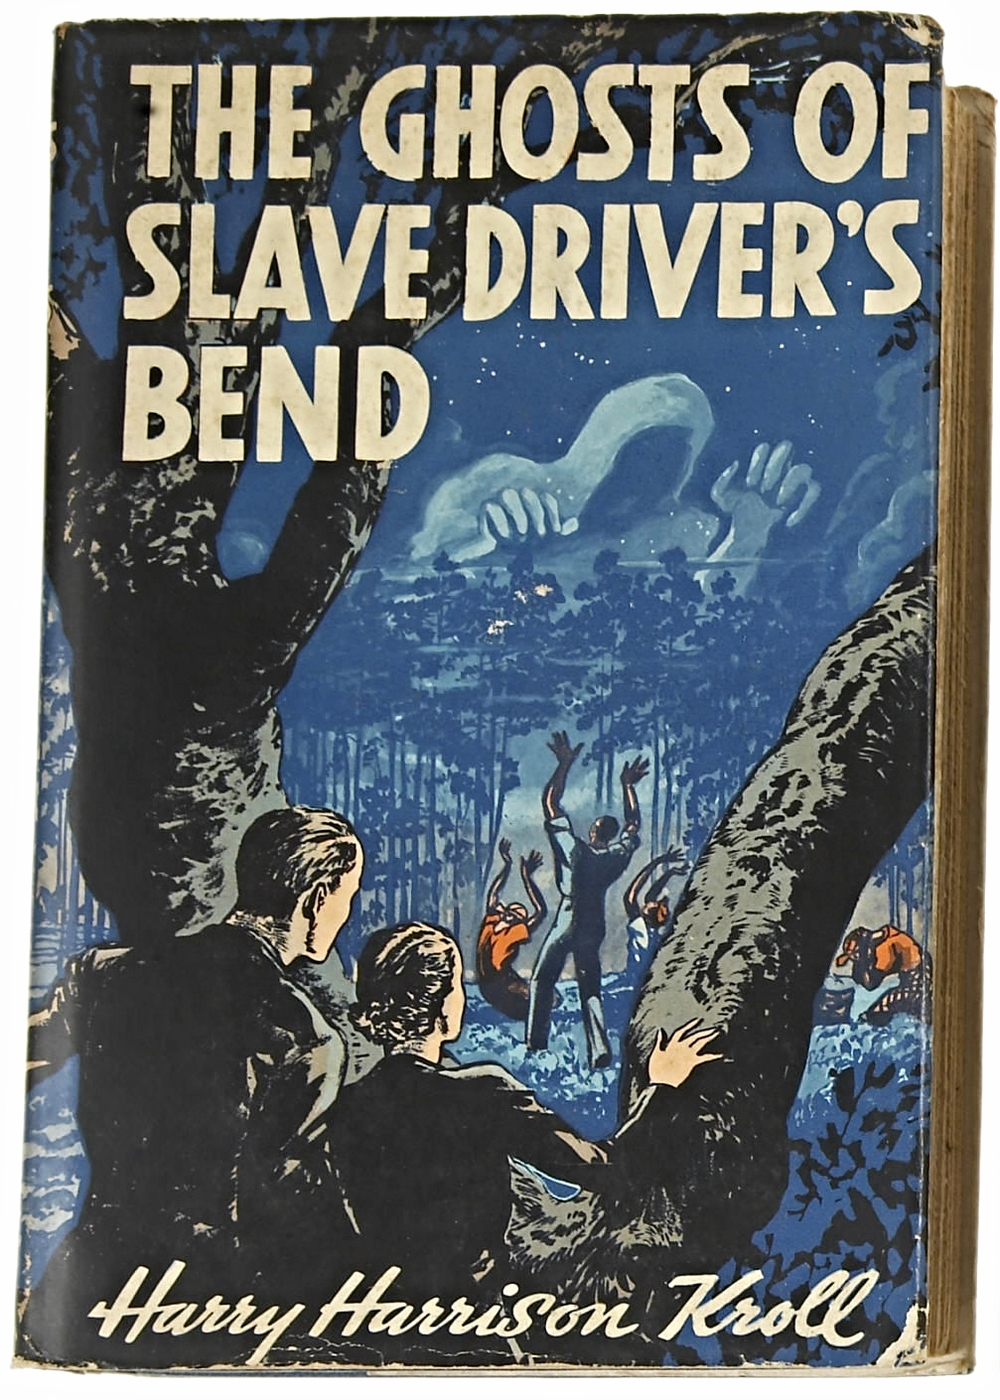 Harry Harrison Kroll. The Ghosts of Slave Driver's Bend. Indianapolis and New York: The Bobbs-Merrill Company, [1937]. First edition.